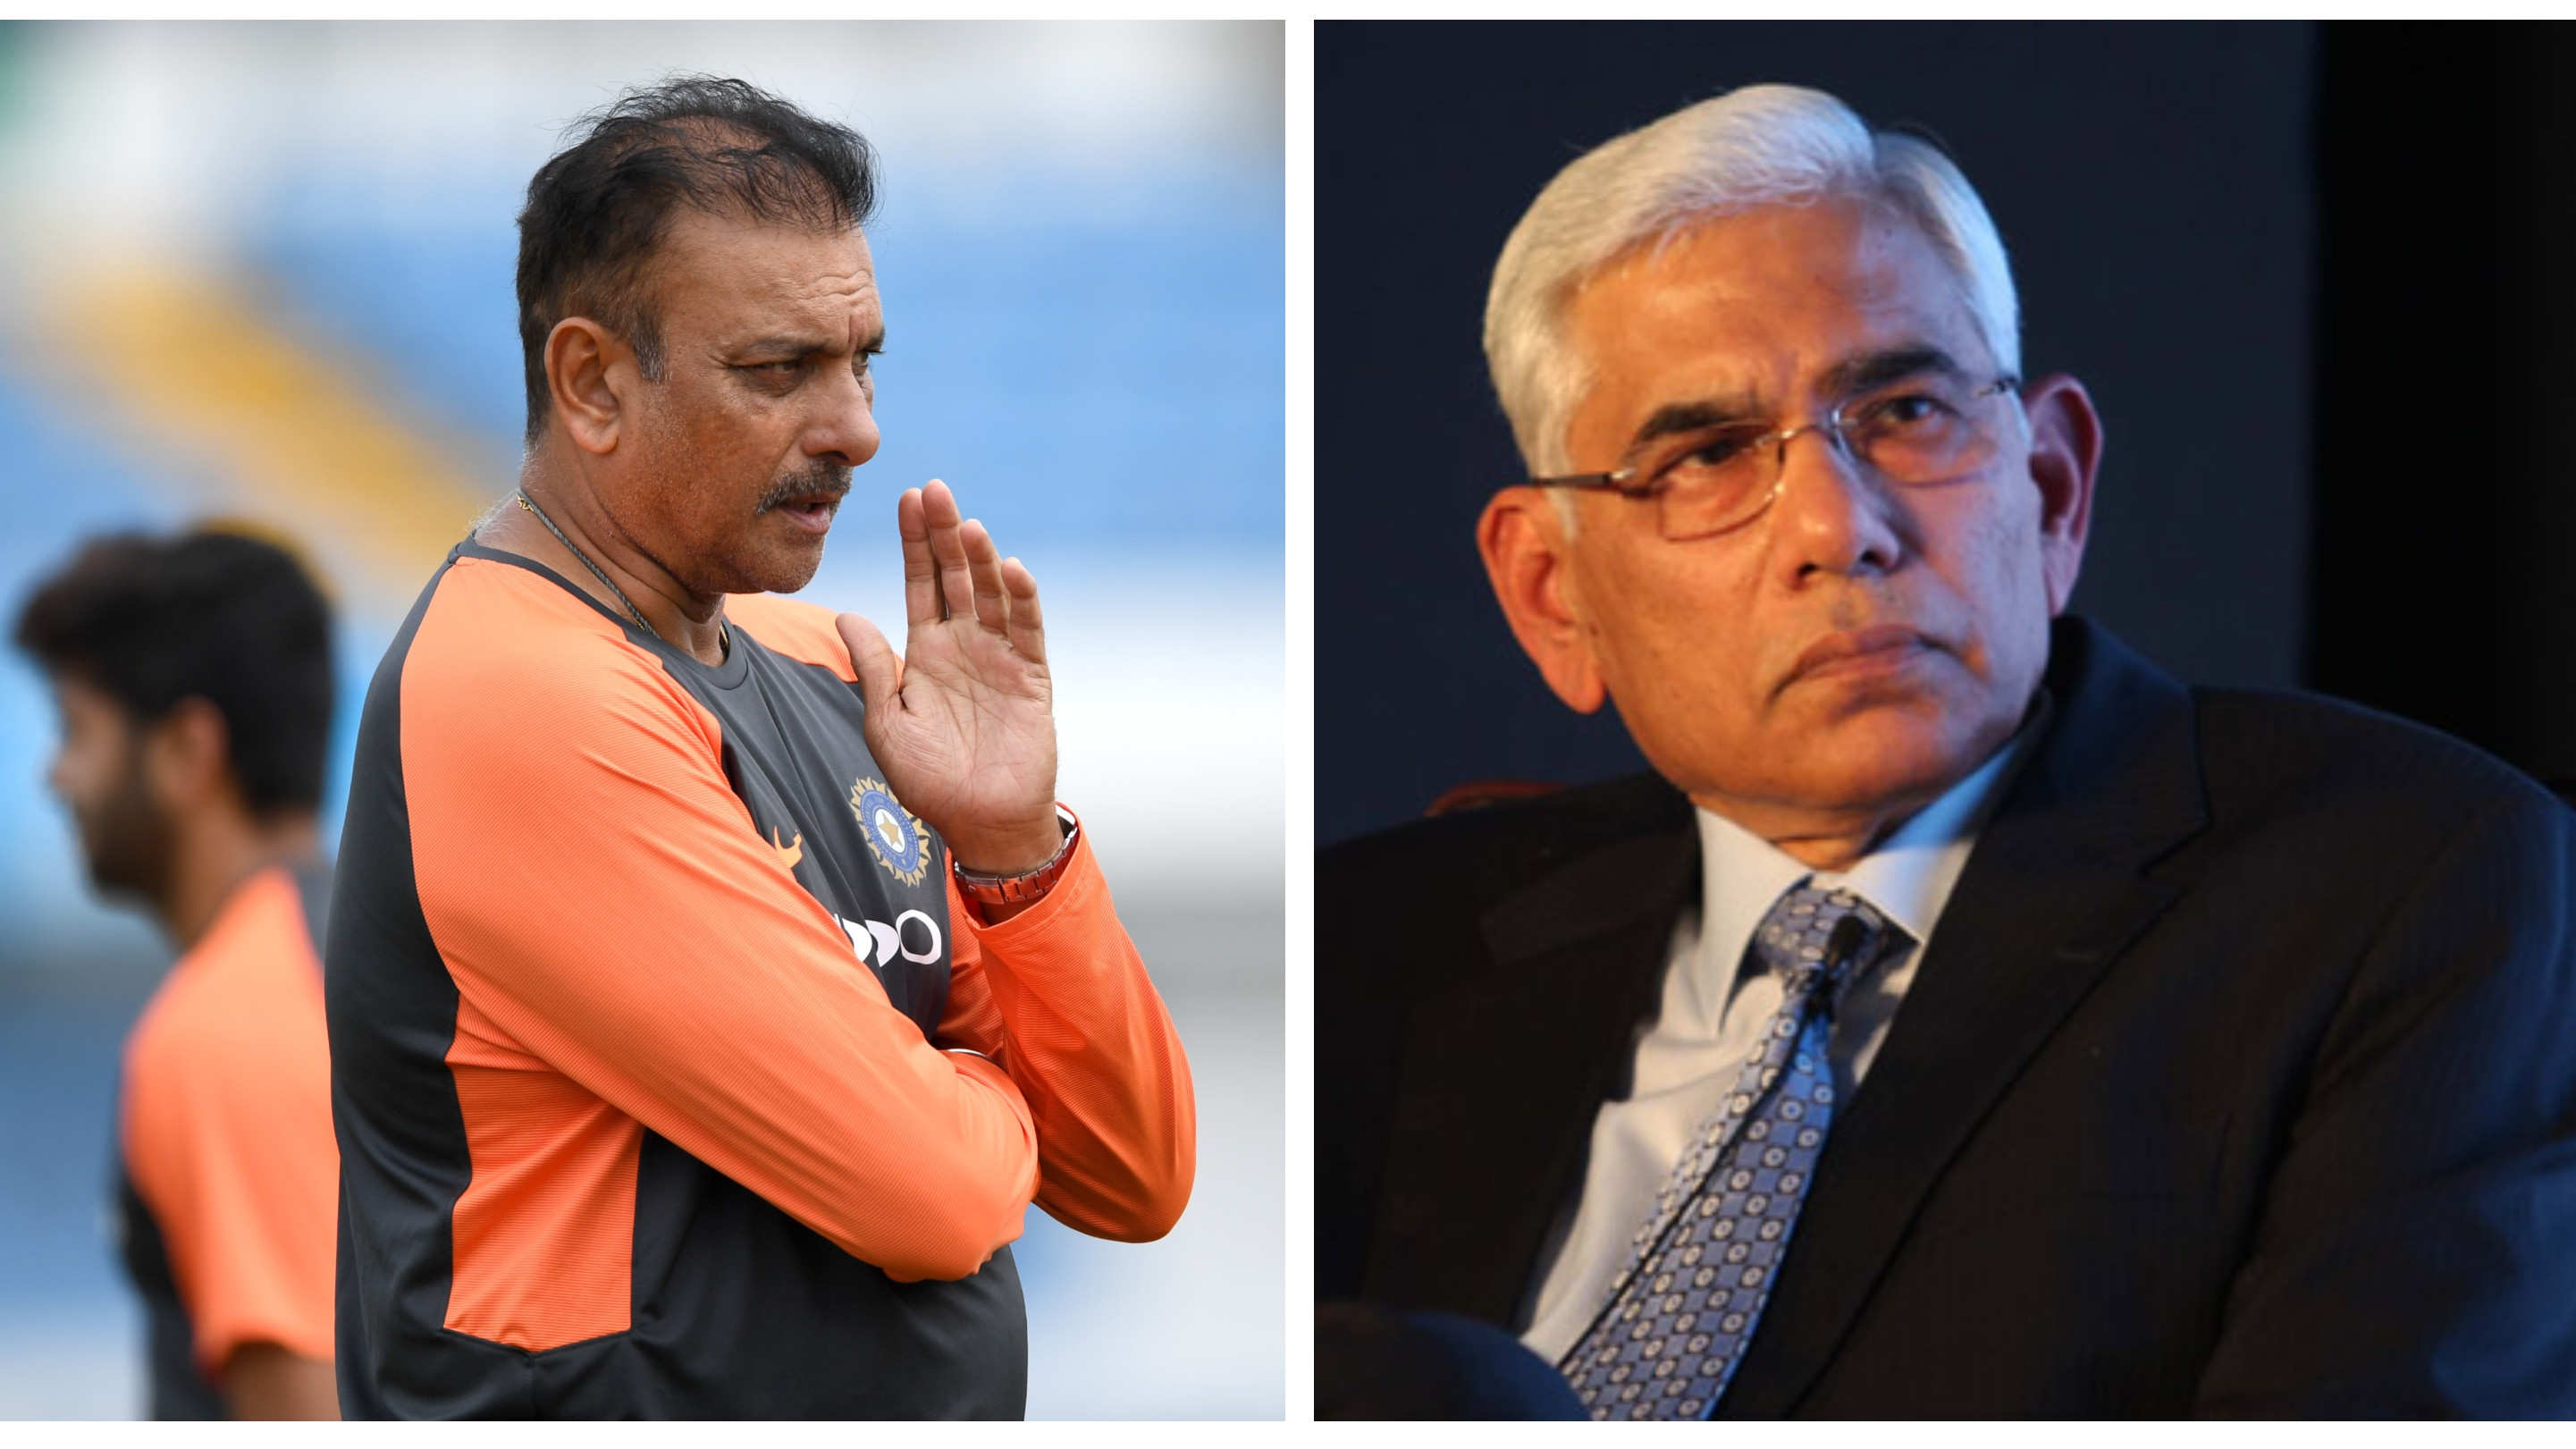 ENG vs IND 2018: COA to discuss India's poor performance in England with Ravi Shastri